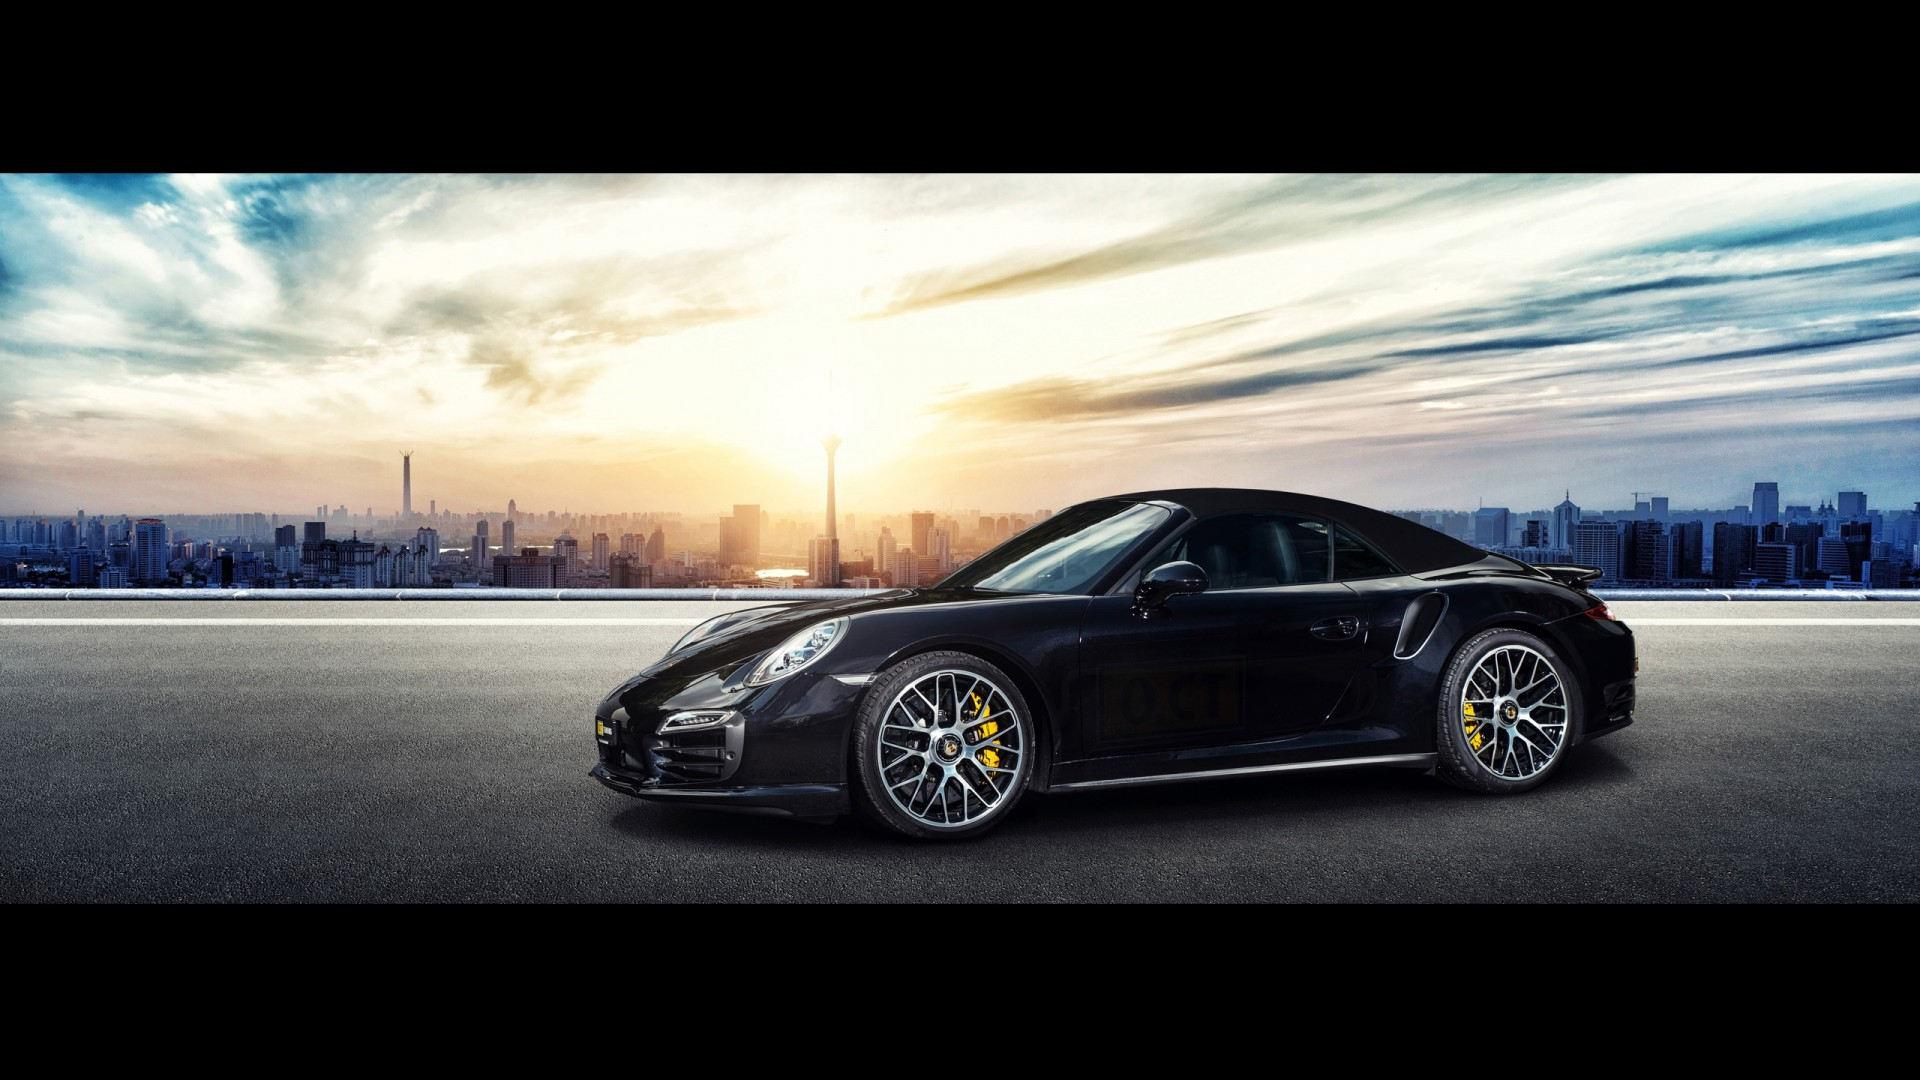 2015 OCT Tuning Porsche 911 Turbo S Wallpaper | HD Car ...